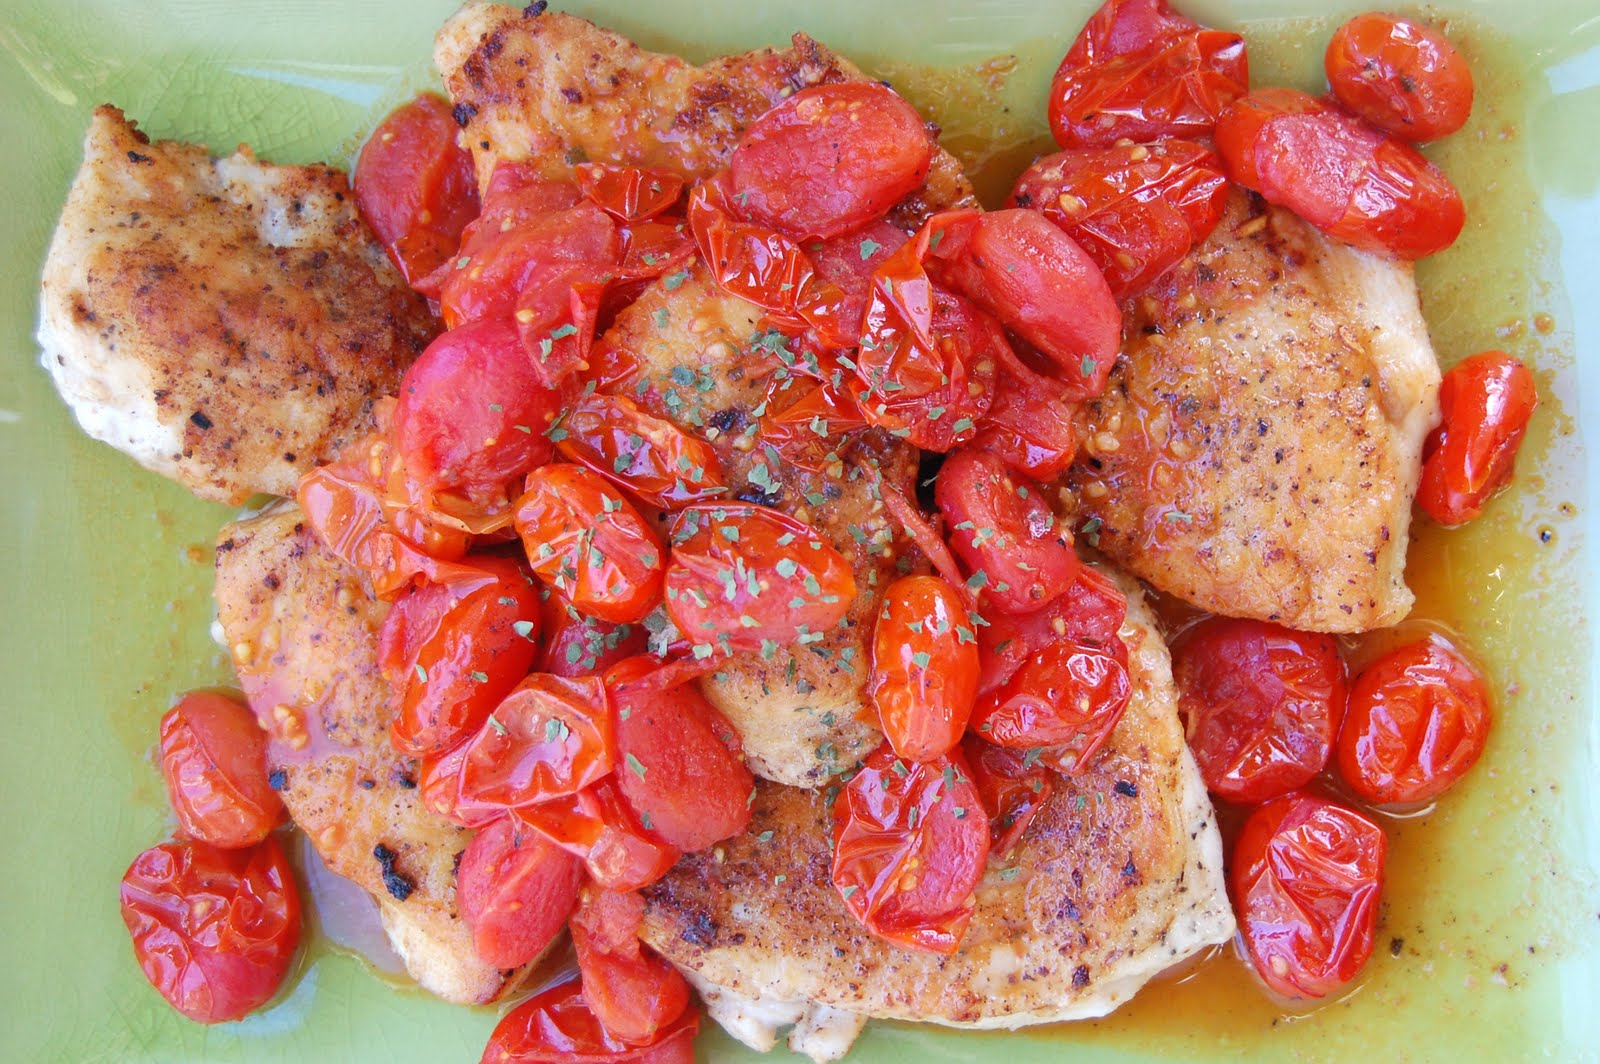 Emily Can Cook: Chicken with Tomato Herb Pan Sauce & Garlic Rice Pilaf